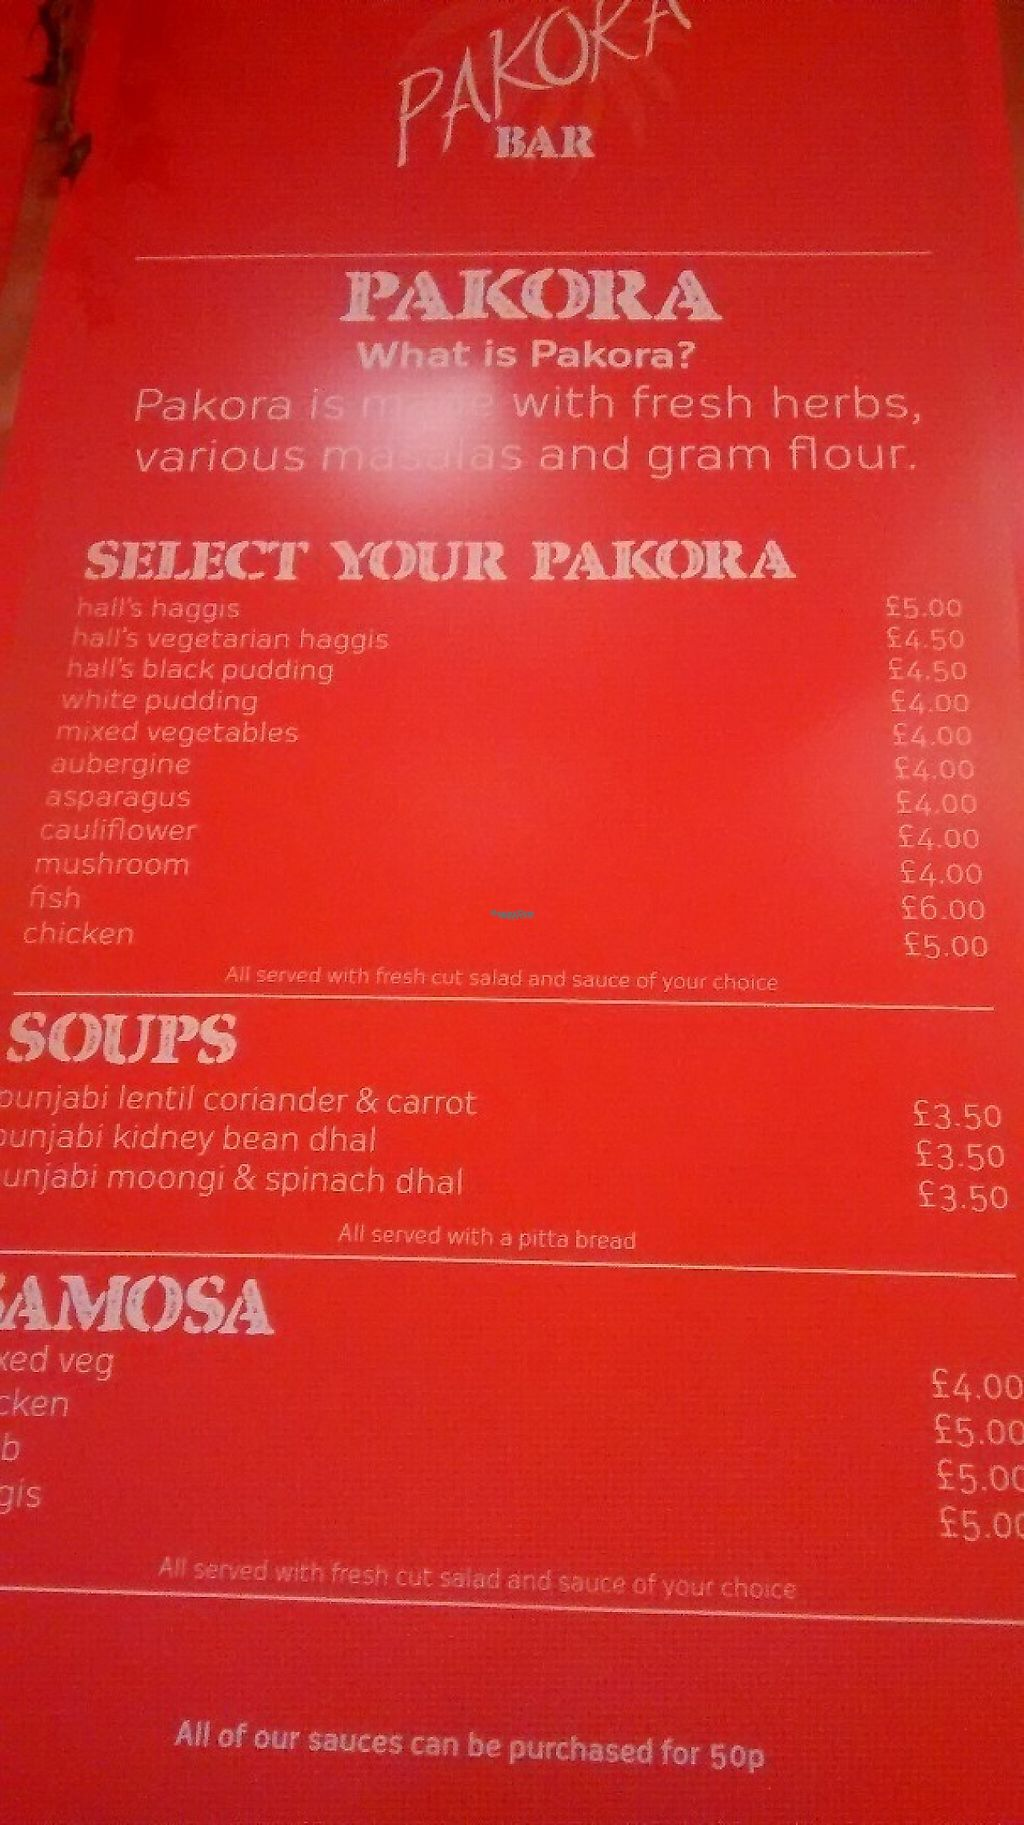 """Photo of The  Pakora Bar  by <a href=""""/members/profile/TrixieFirecracker"""">TrixieFirecracker</a> <br/>Pakora menu <br/> February 7, 2017  - <a href='/contact/abuse/image/79527/223863'>Report</a>"""